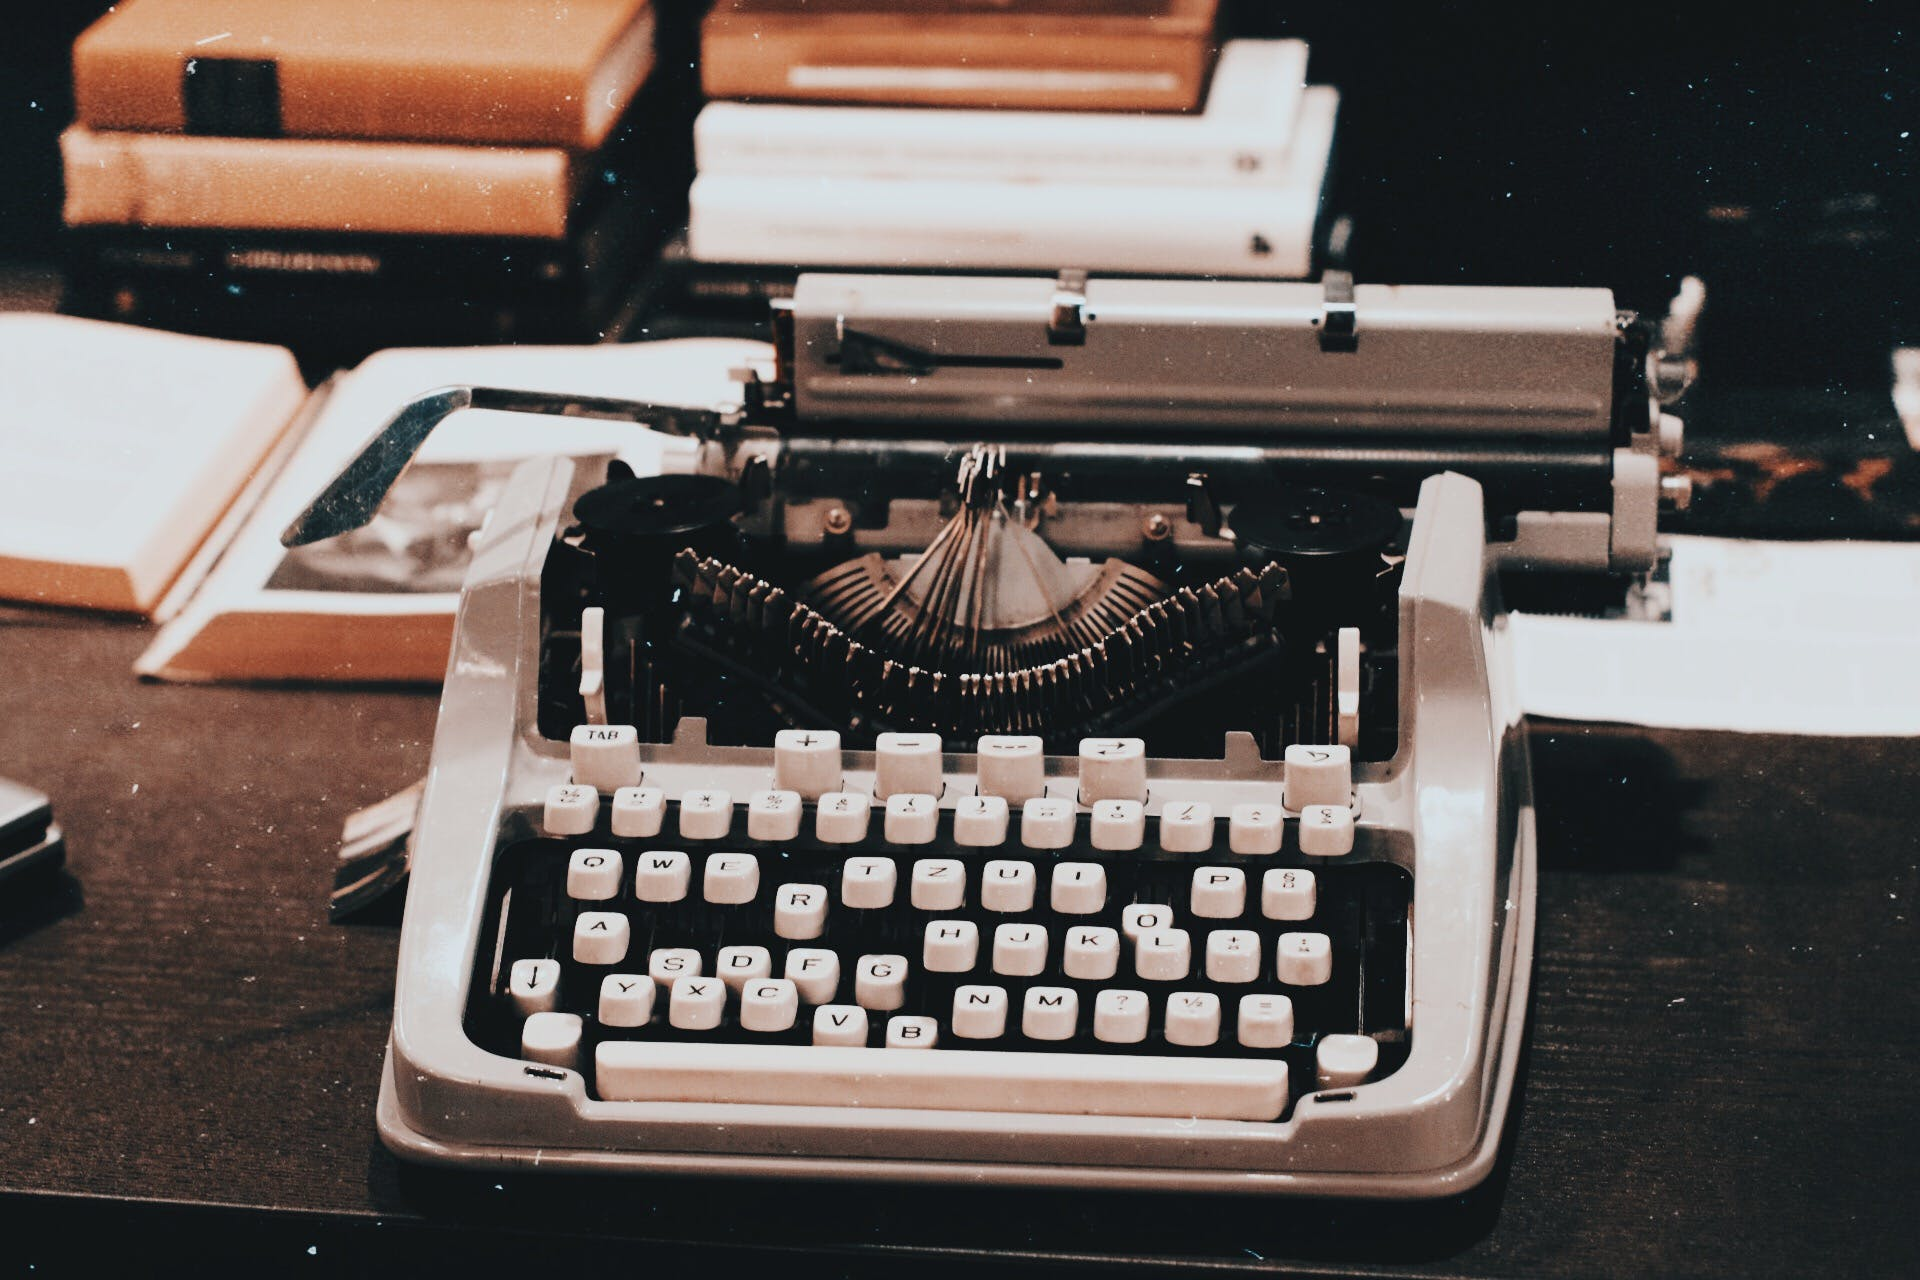 Photograph of a Vintage Typewriter on Table